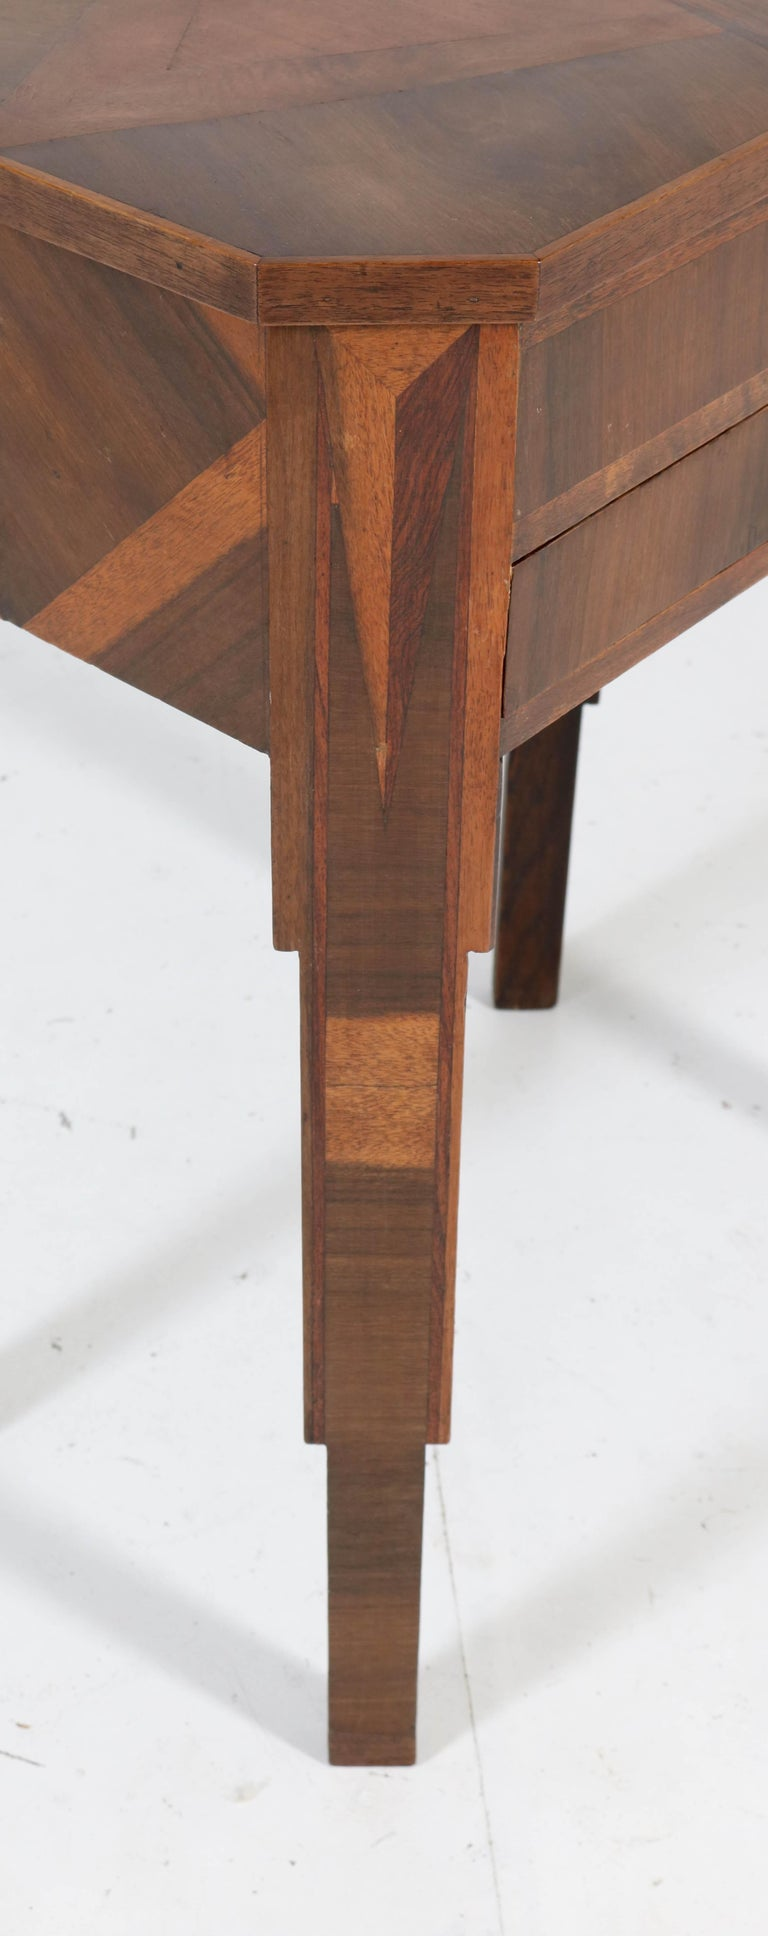 French Walnut Art Deco Sewing Table with Inlay, 1930s For Sale 3